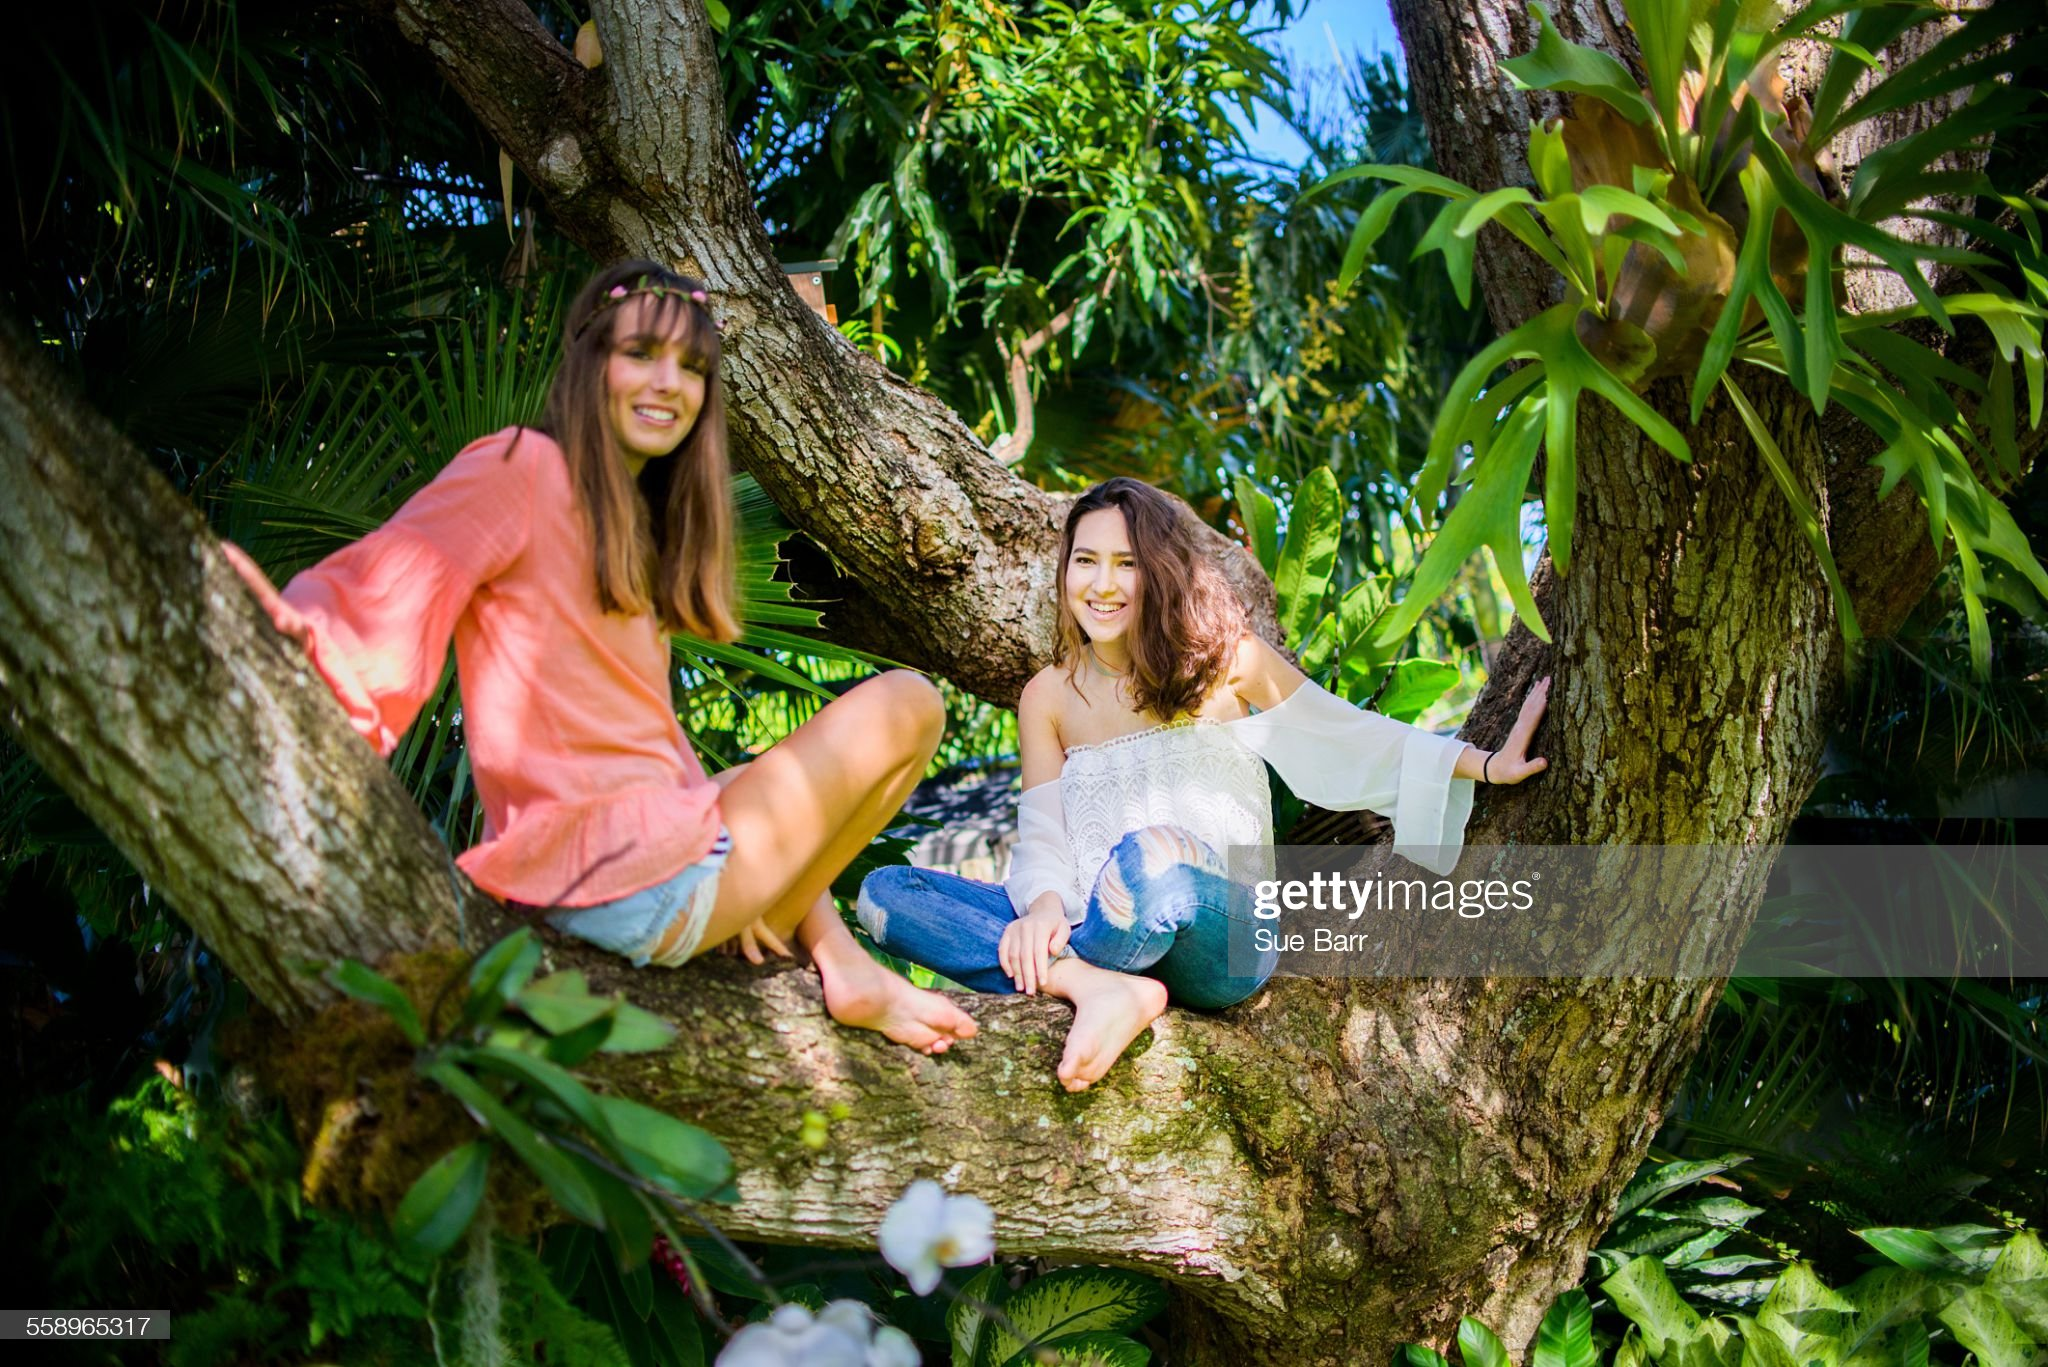 https://media.gettyimages.com/photos/portrait-of-two-young-female-friends-sitting-cross-legged-in-tree-picture-id558965317?s=2048x2048